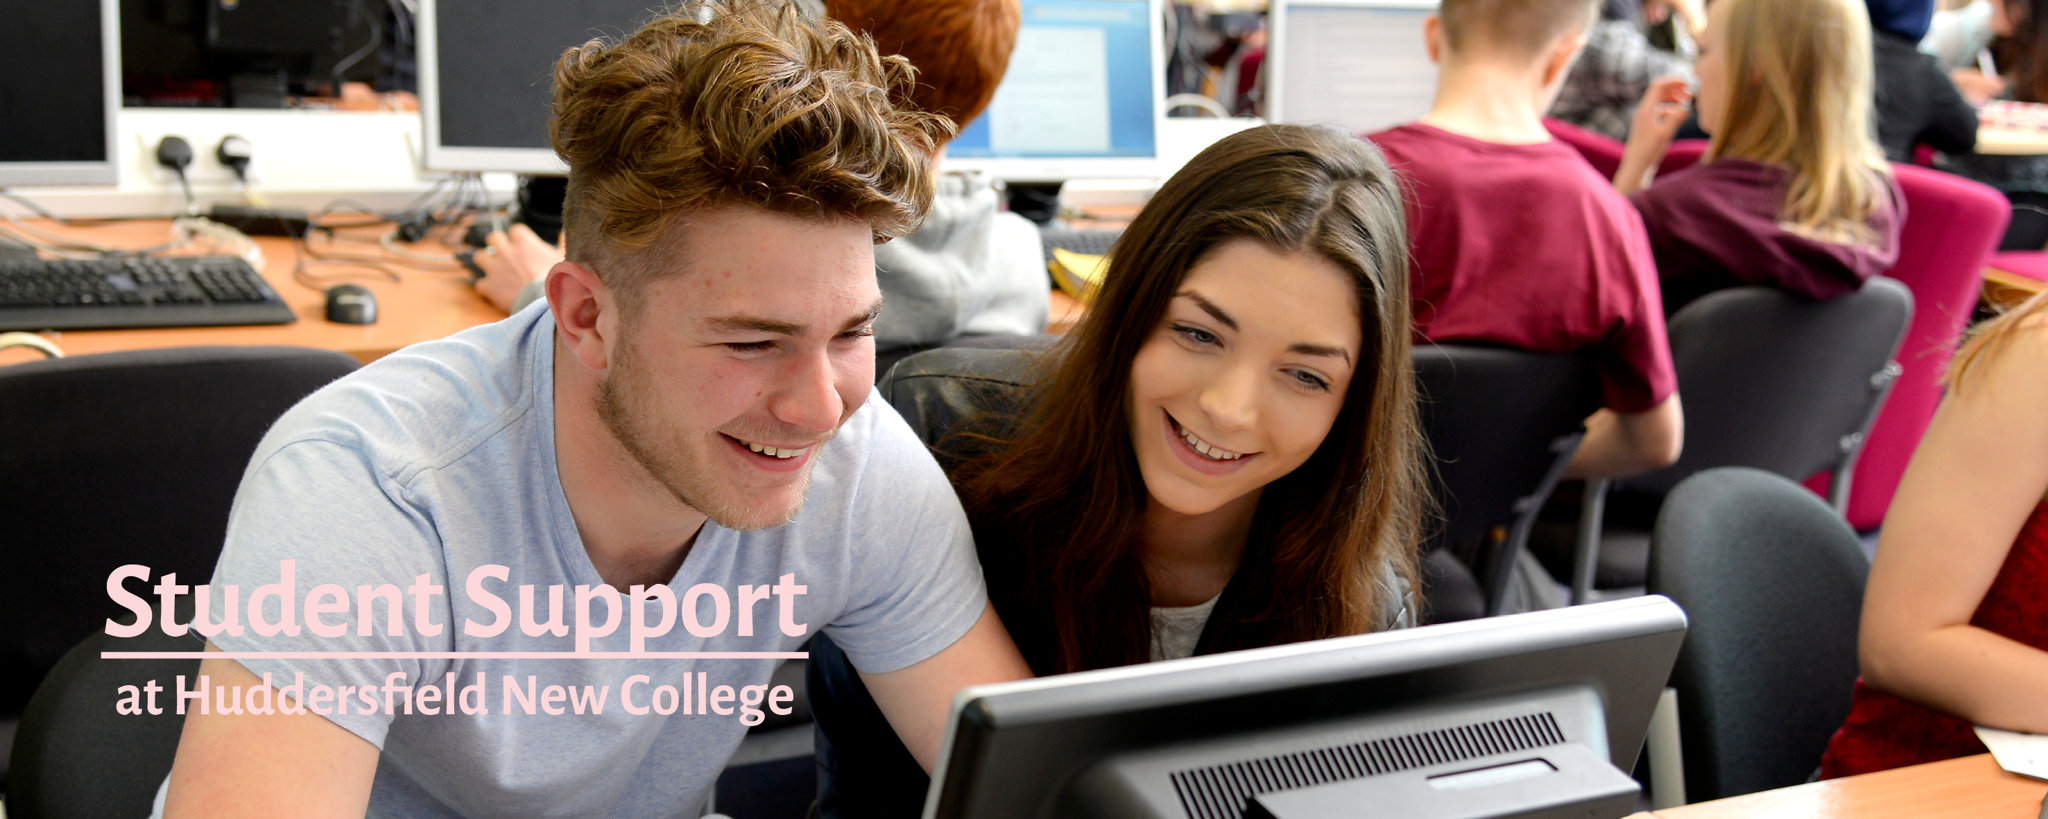 A picture of students using computing facilities at HNC